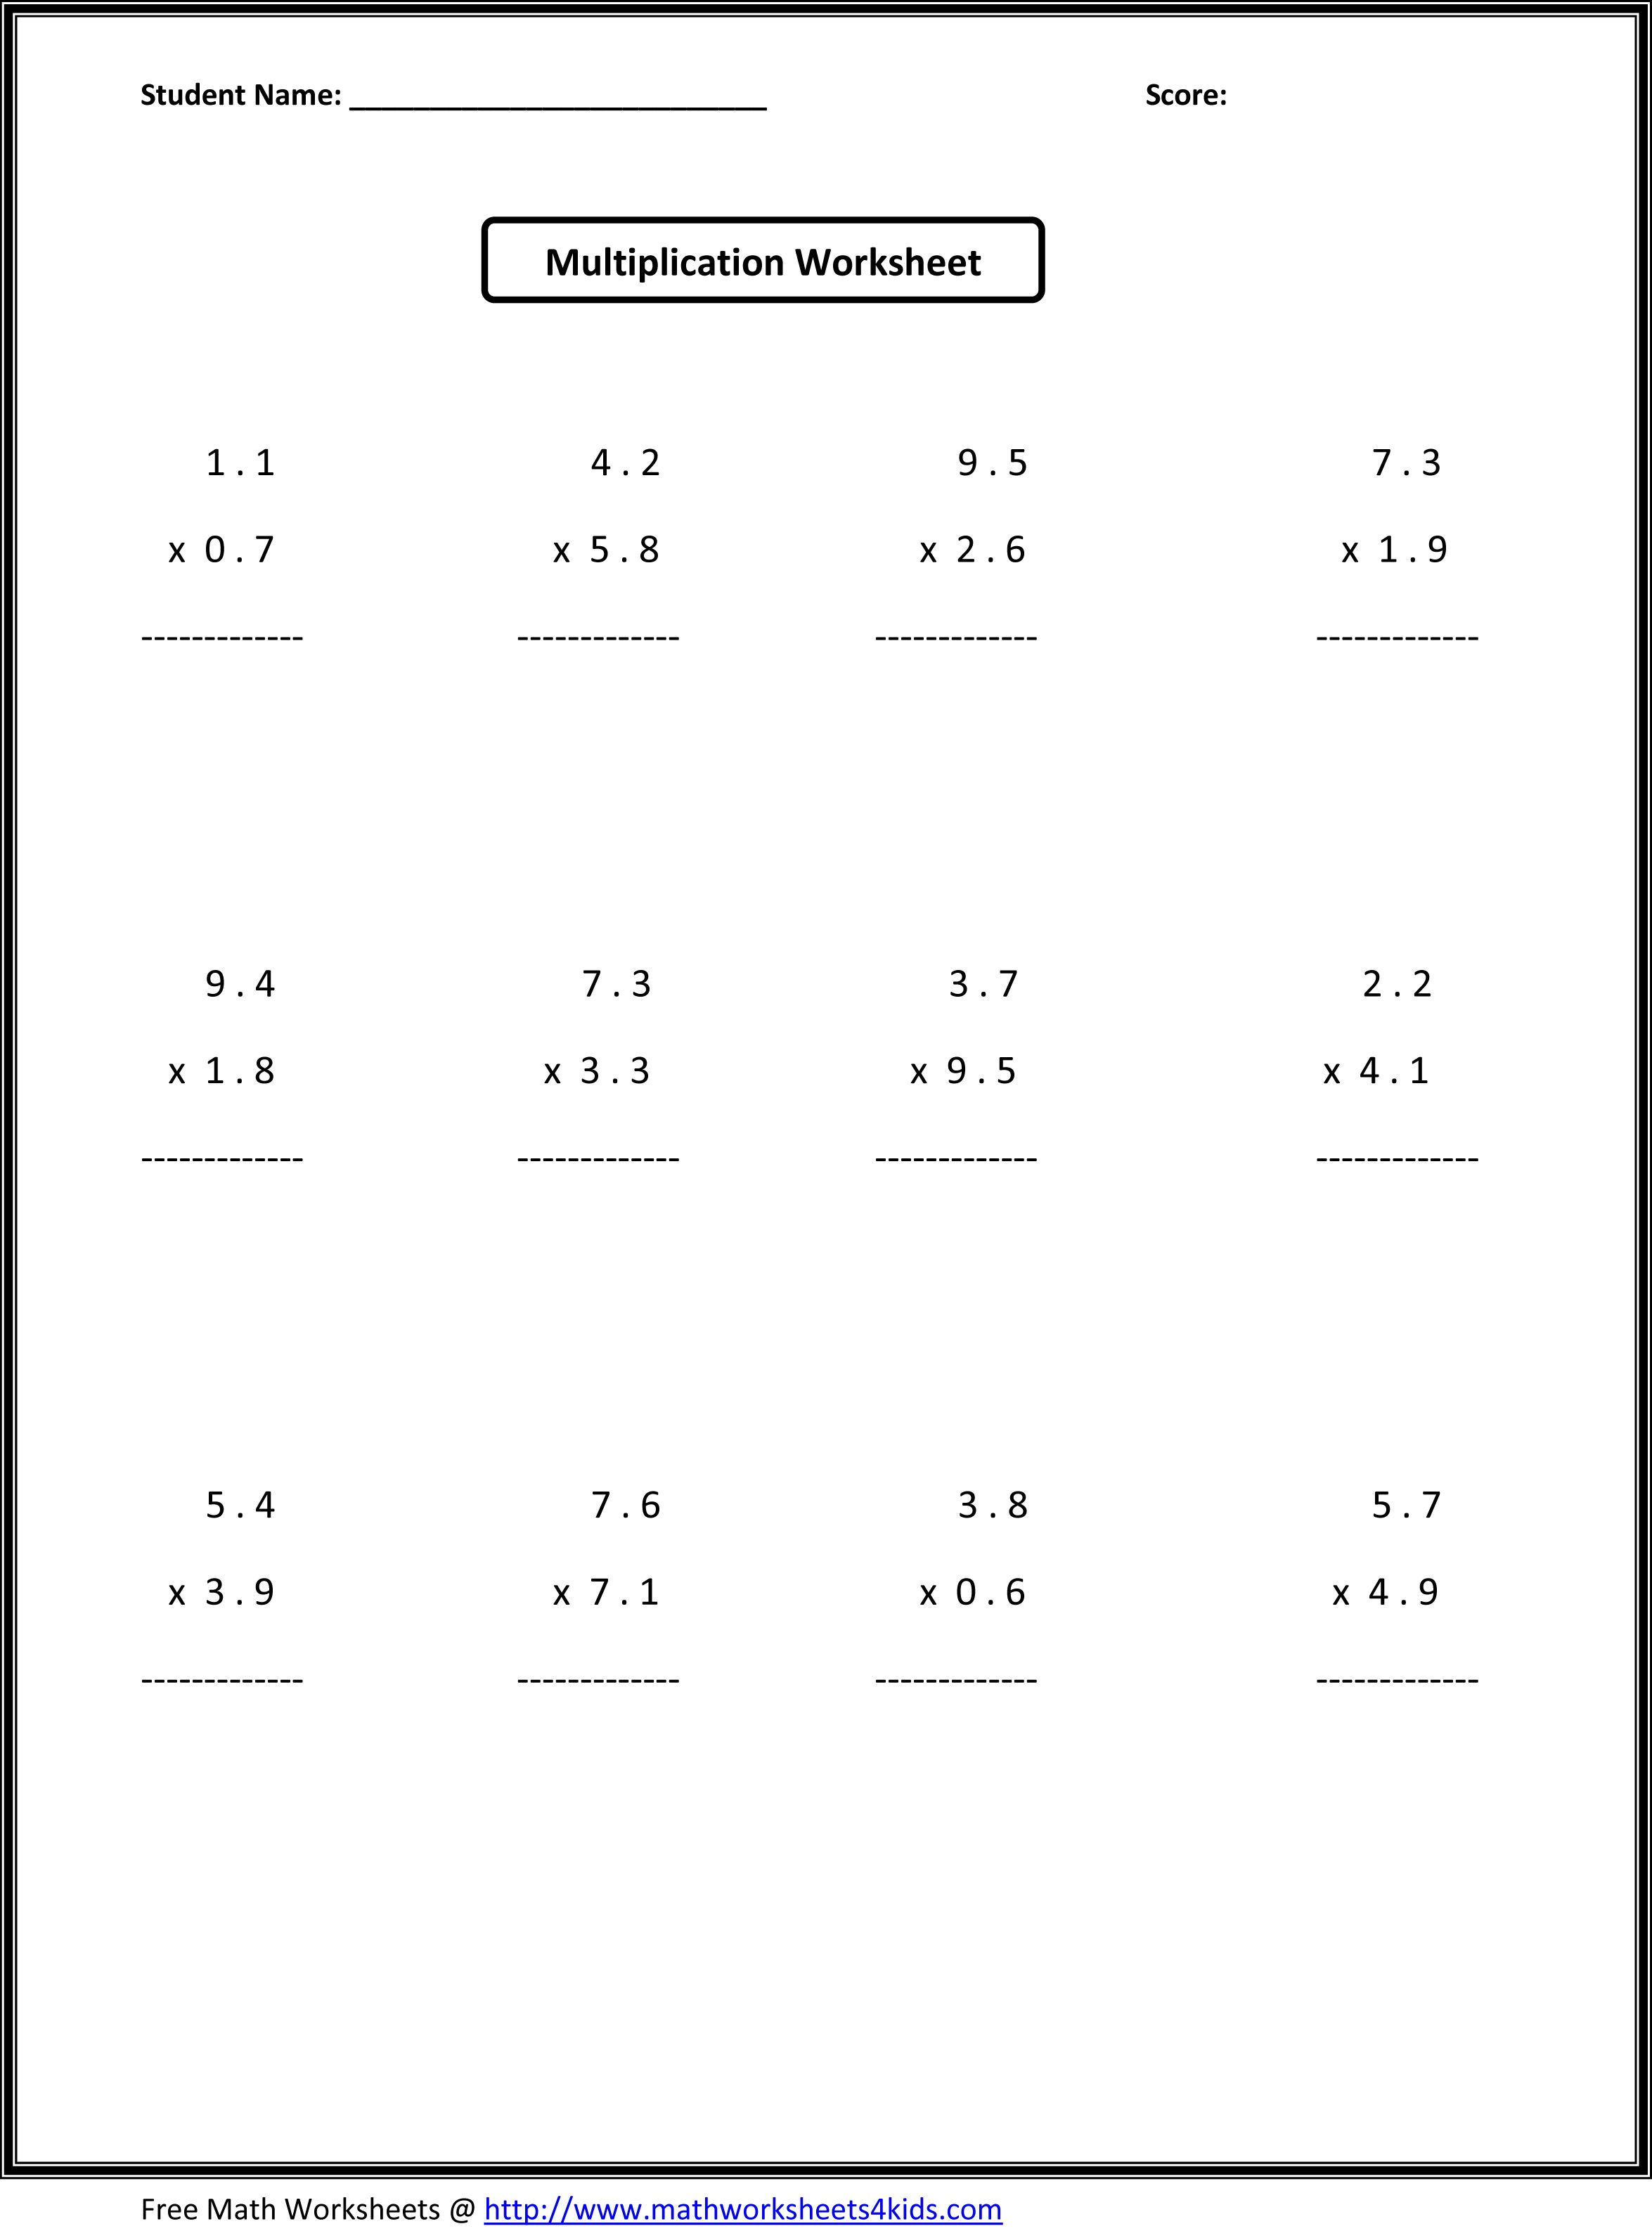 Worksheets Worksheet For 6th Grade 7th grade math worksheets value absolute sixth worksheets